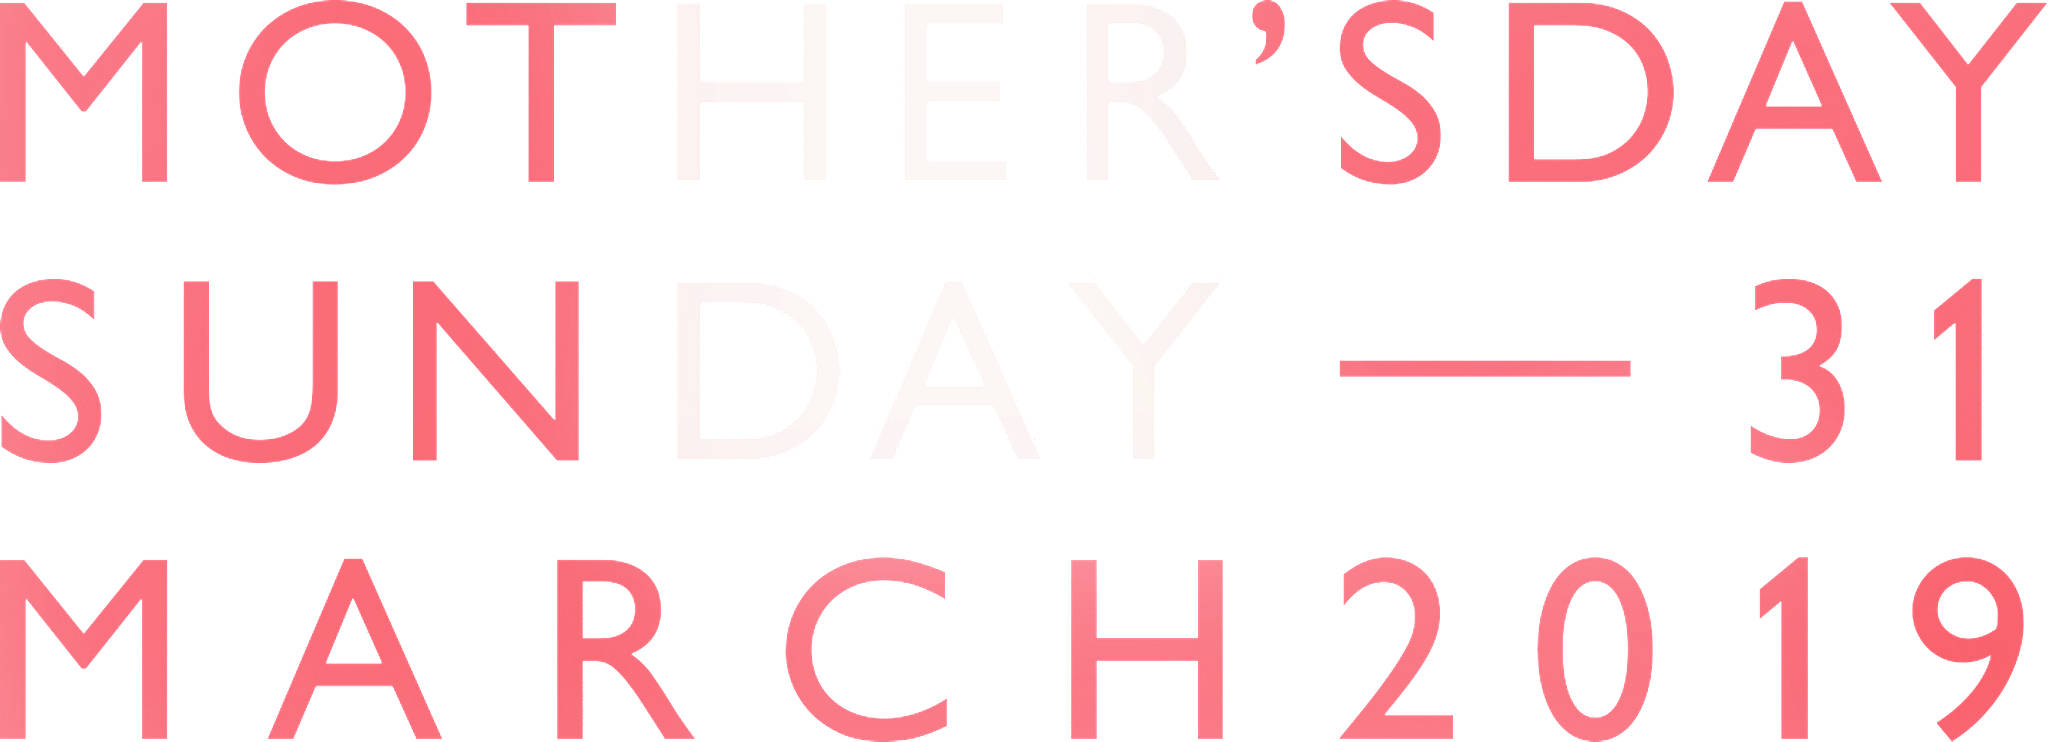 MOTHER'S DAY - SUNDAY 31 MARCH 2019